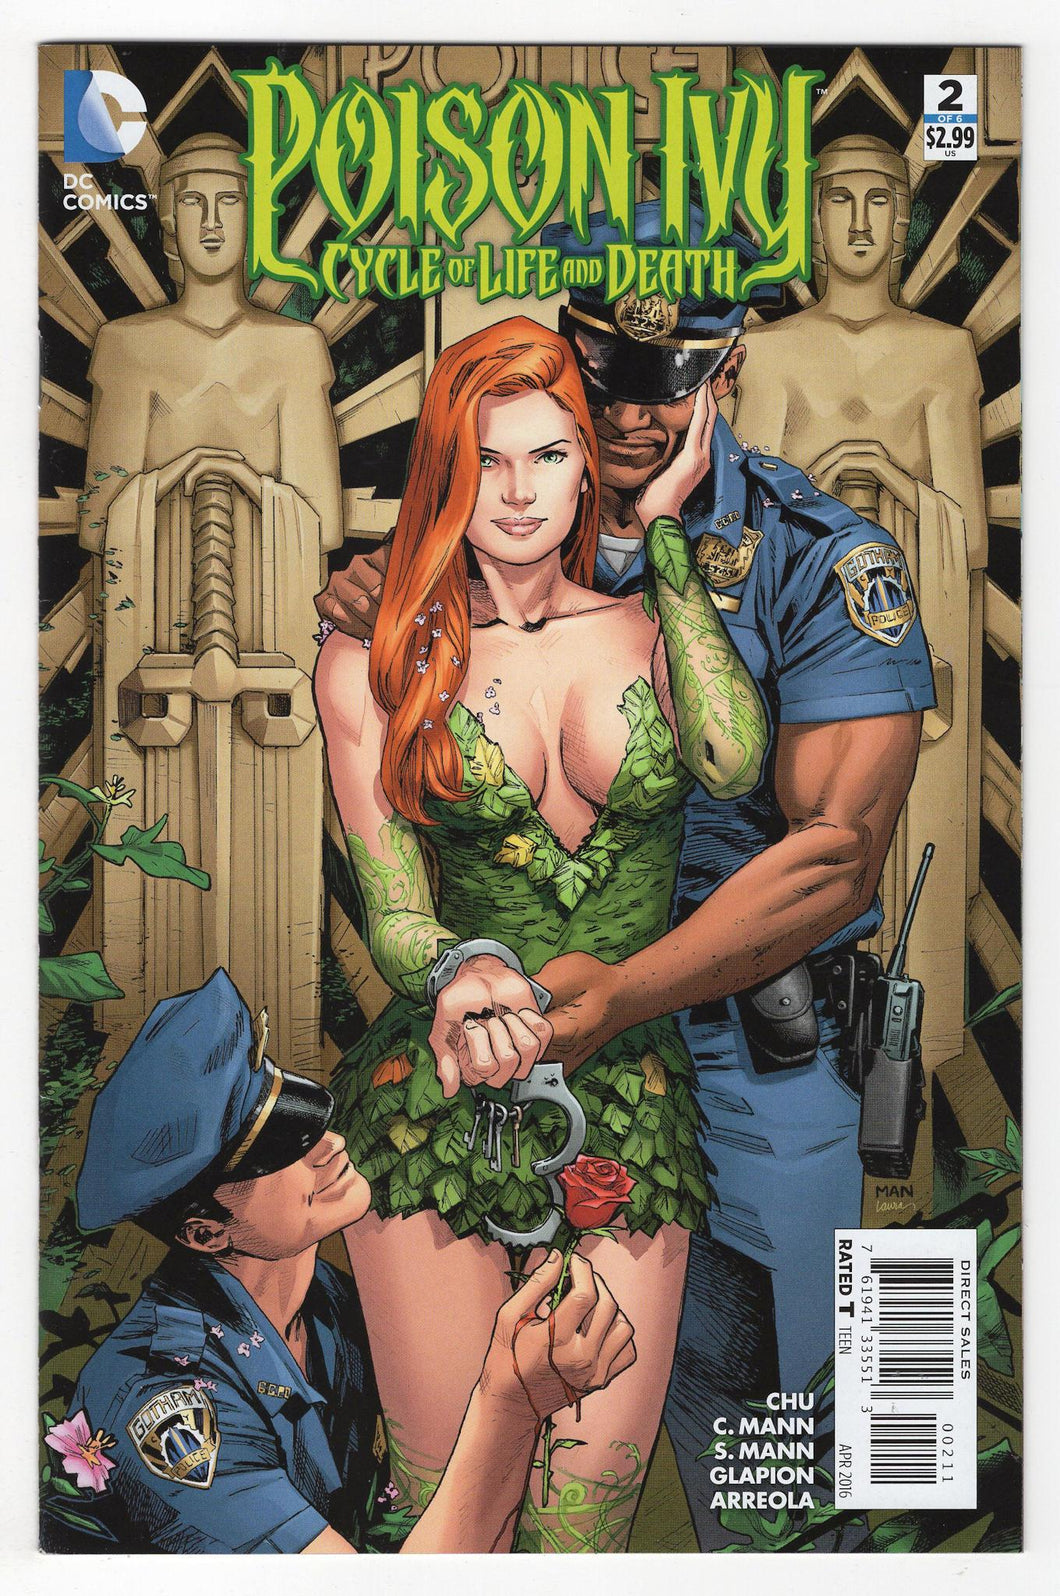 Poison Ivy Cycle of Life and Death #2 Cover Front